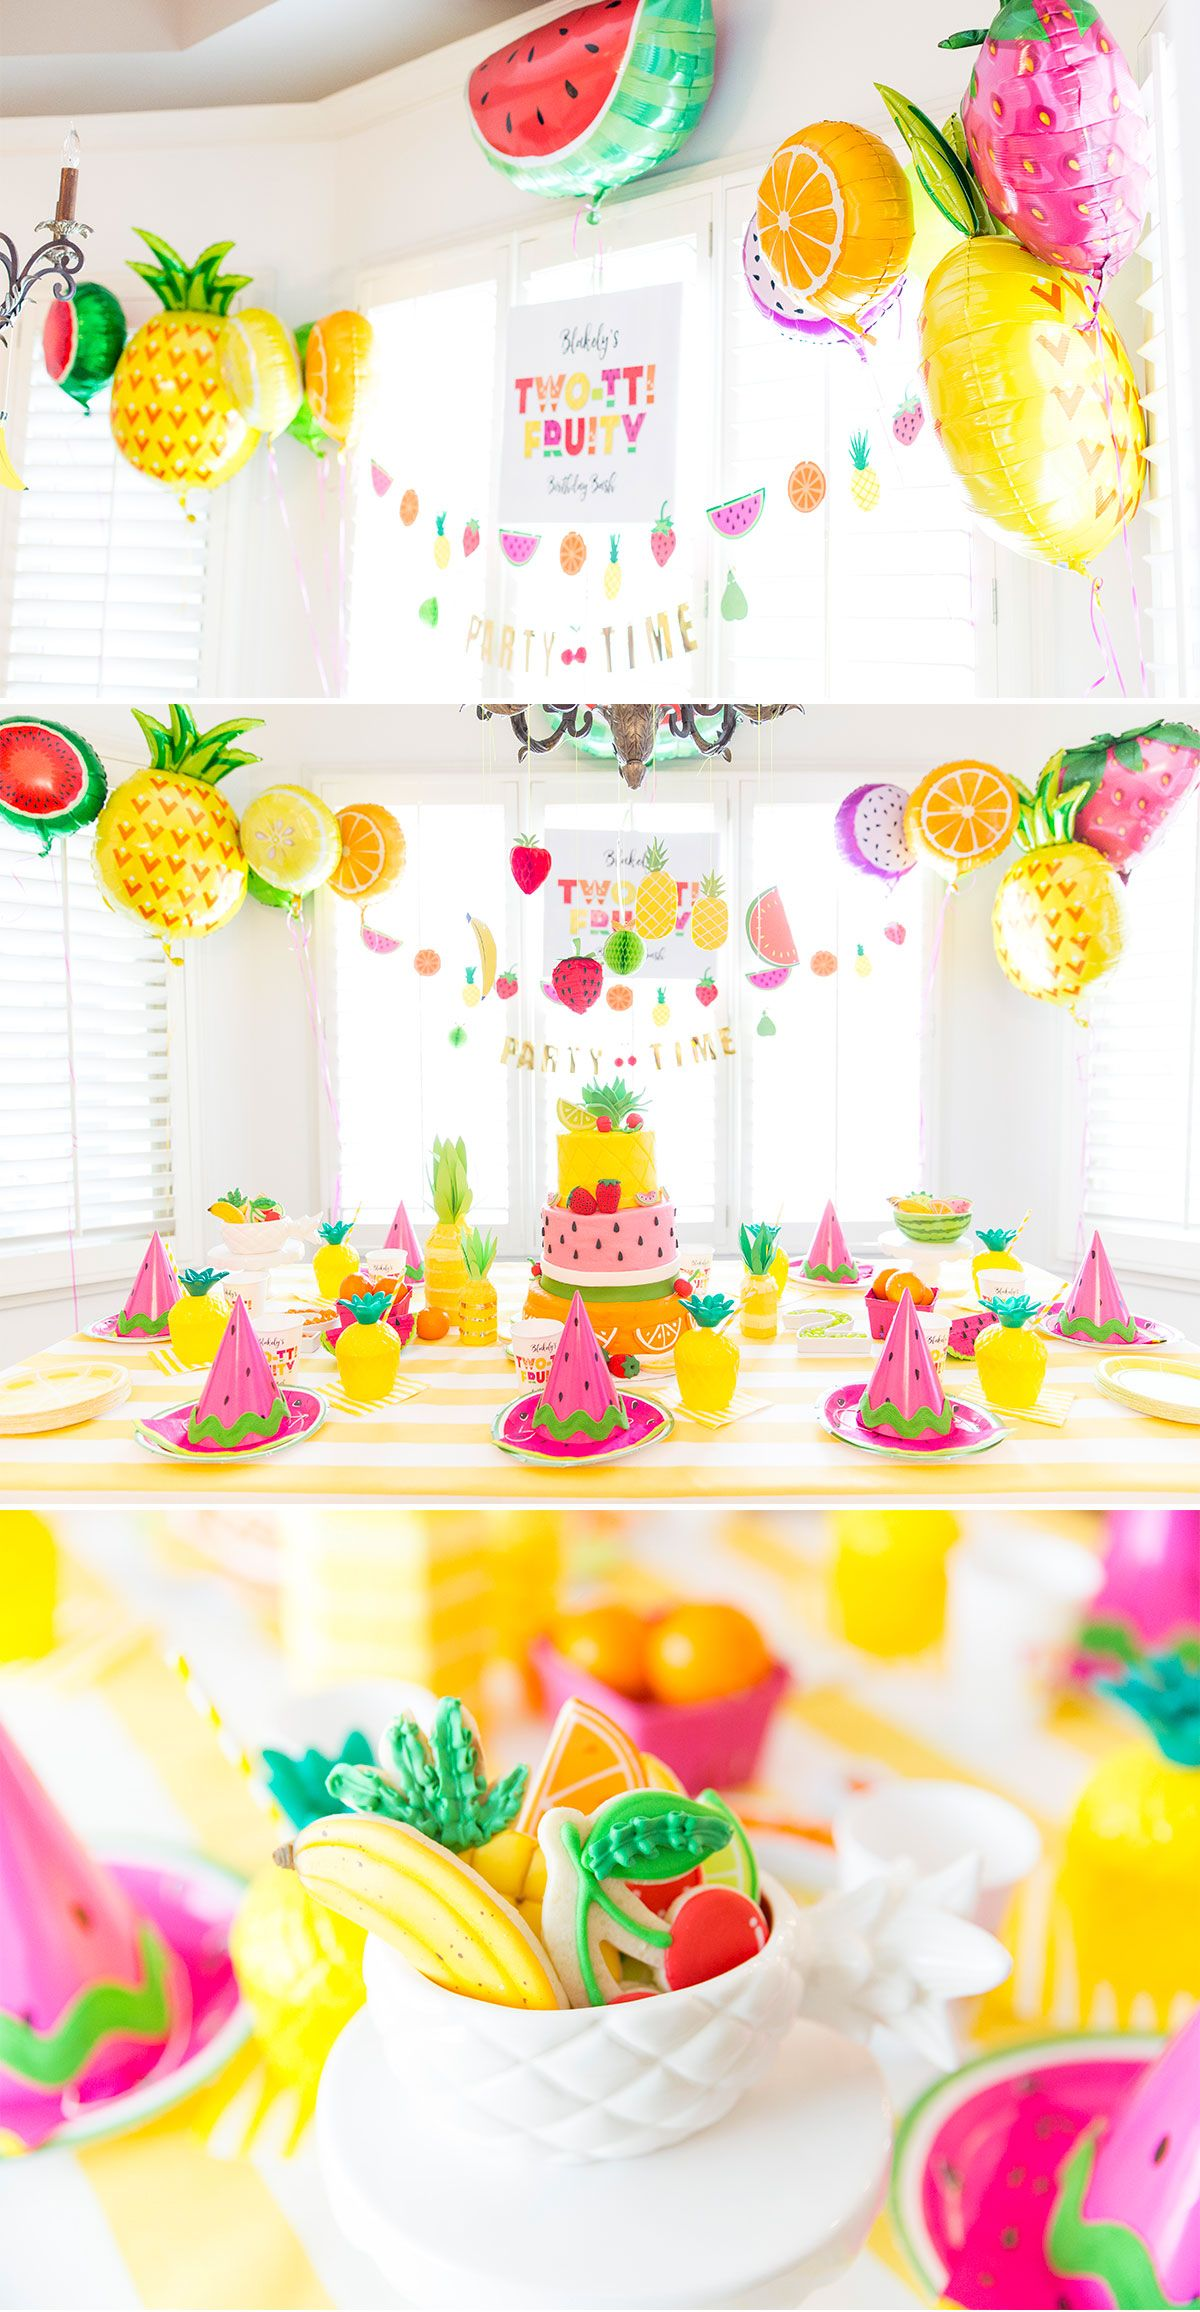 two-tti fruity birthday party: blakely turns 2 | celebrate